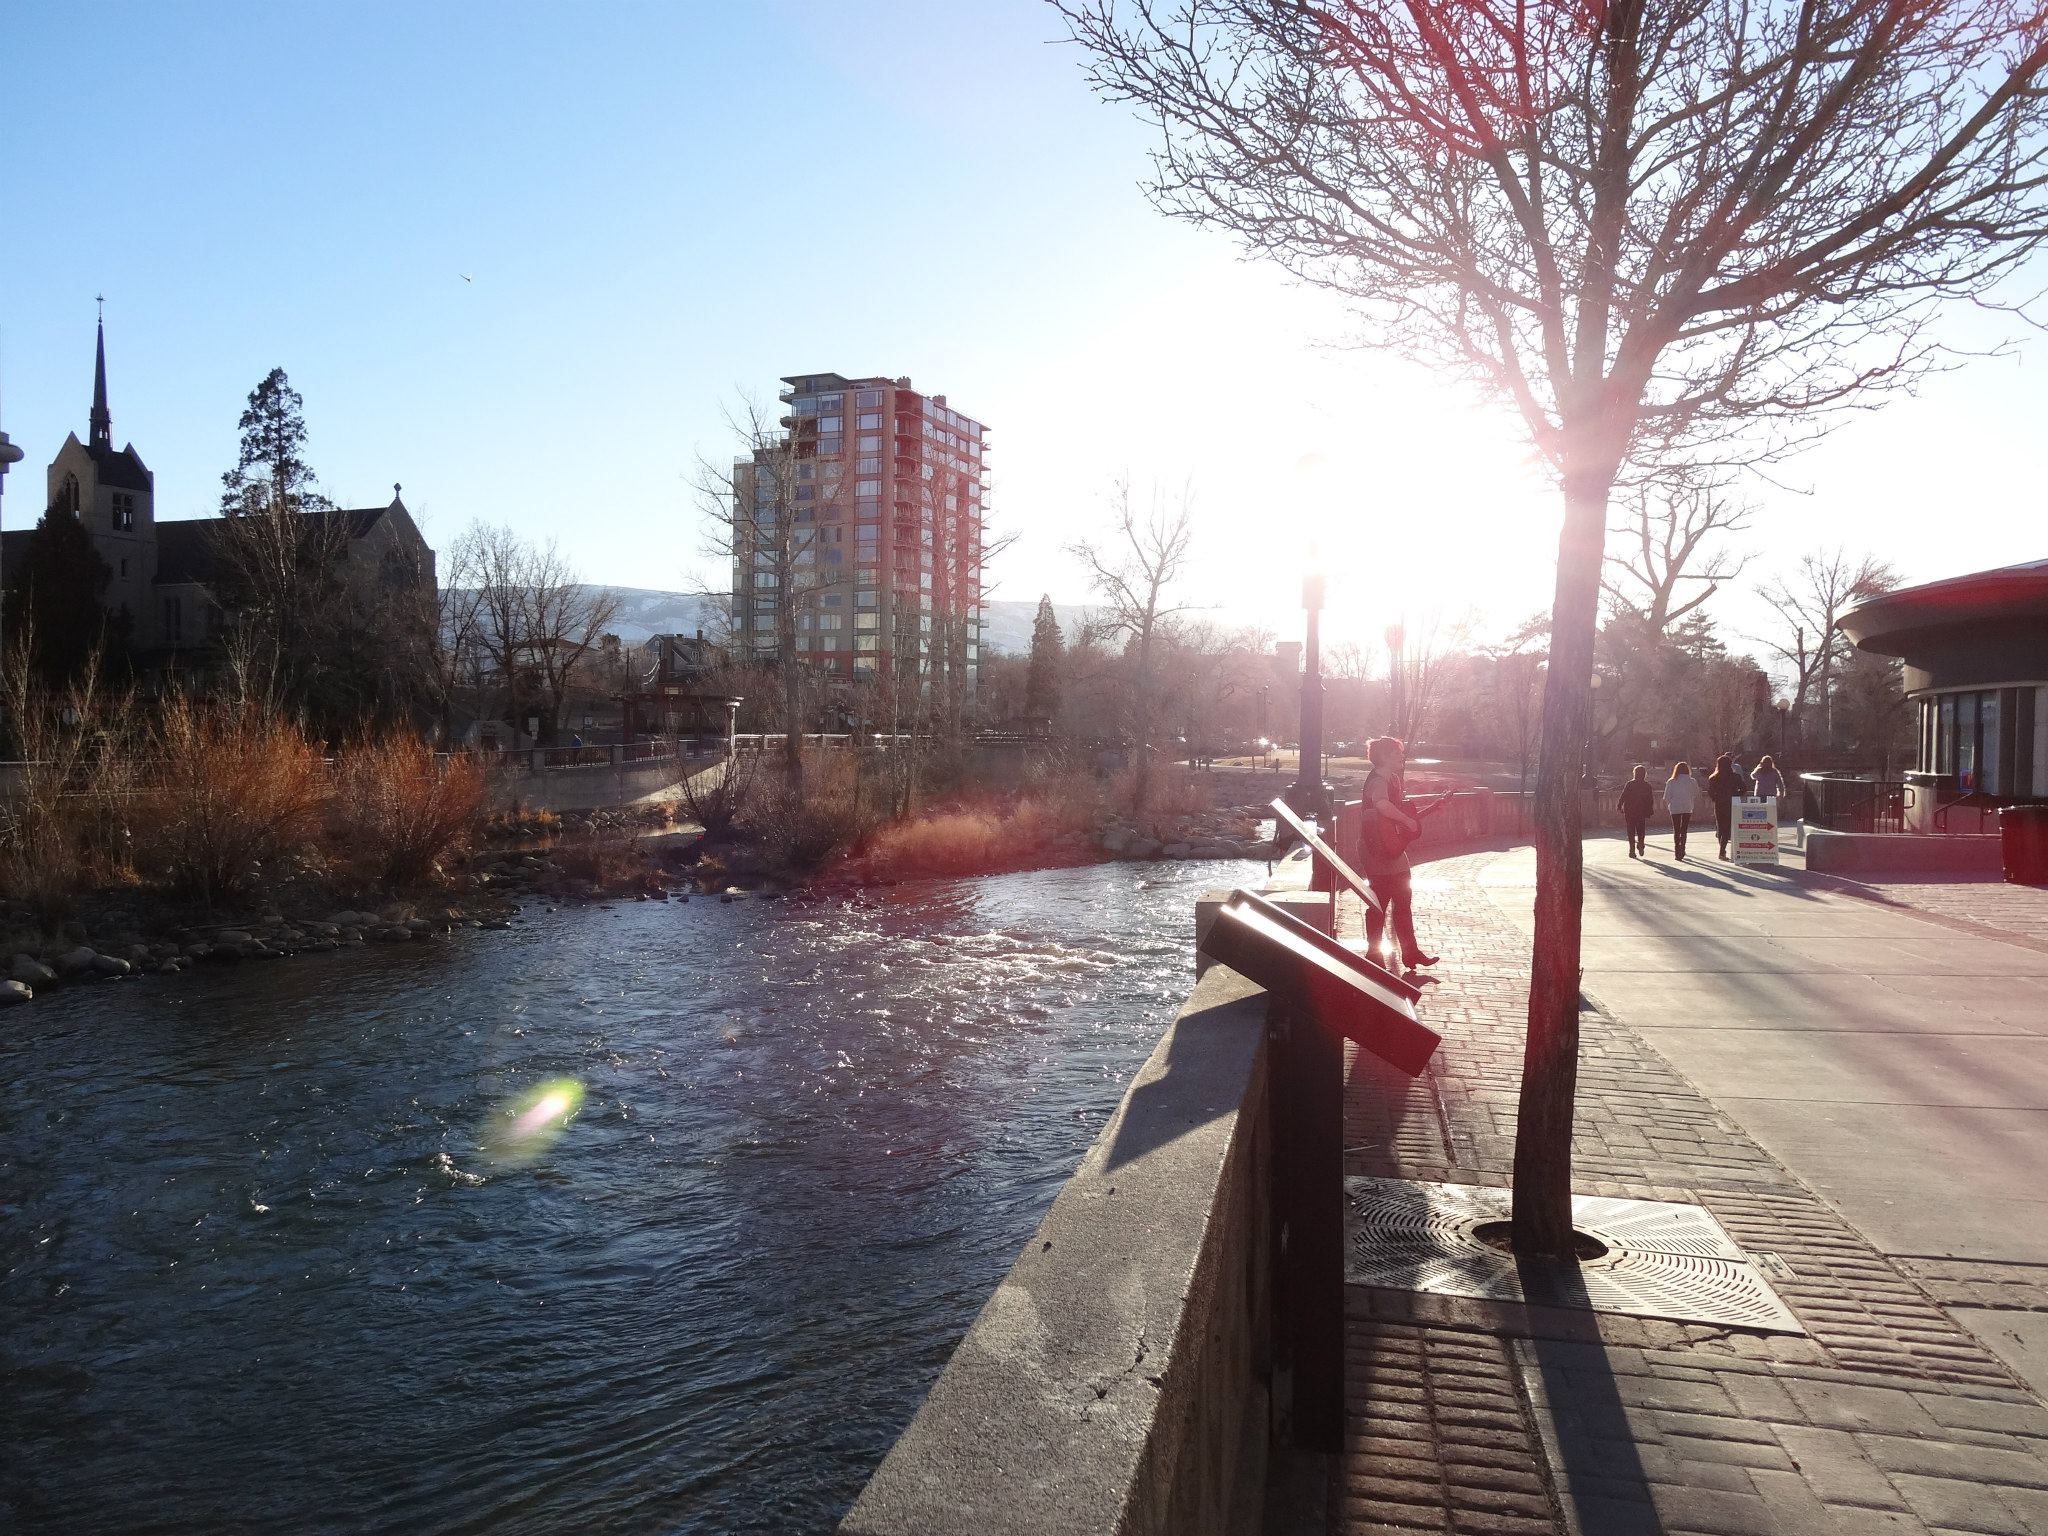 Reno riverwalk in Nevada